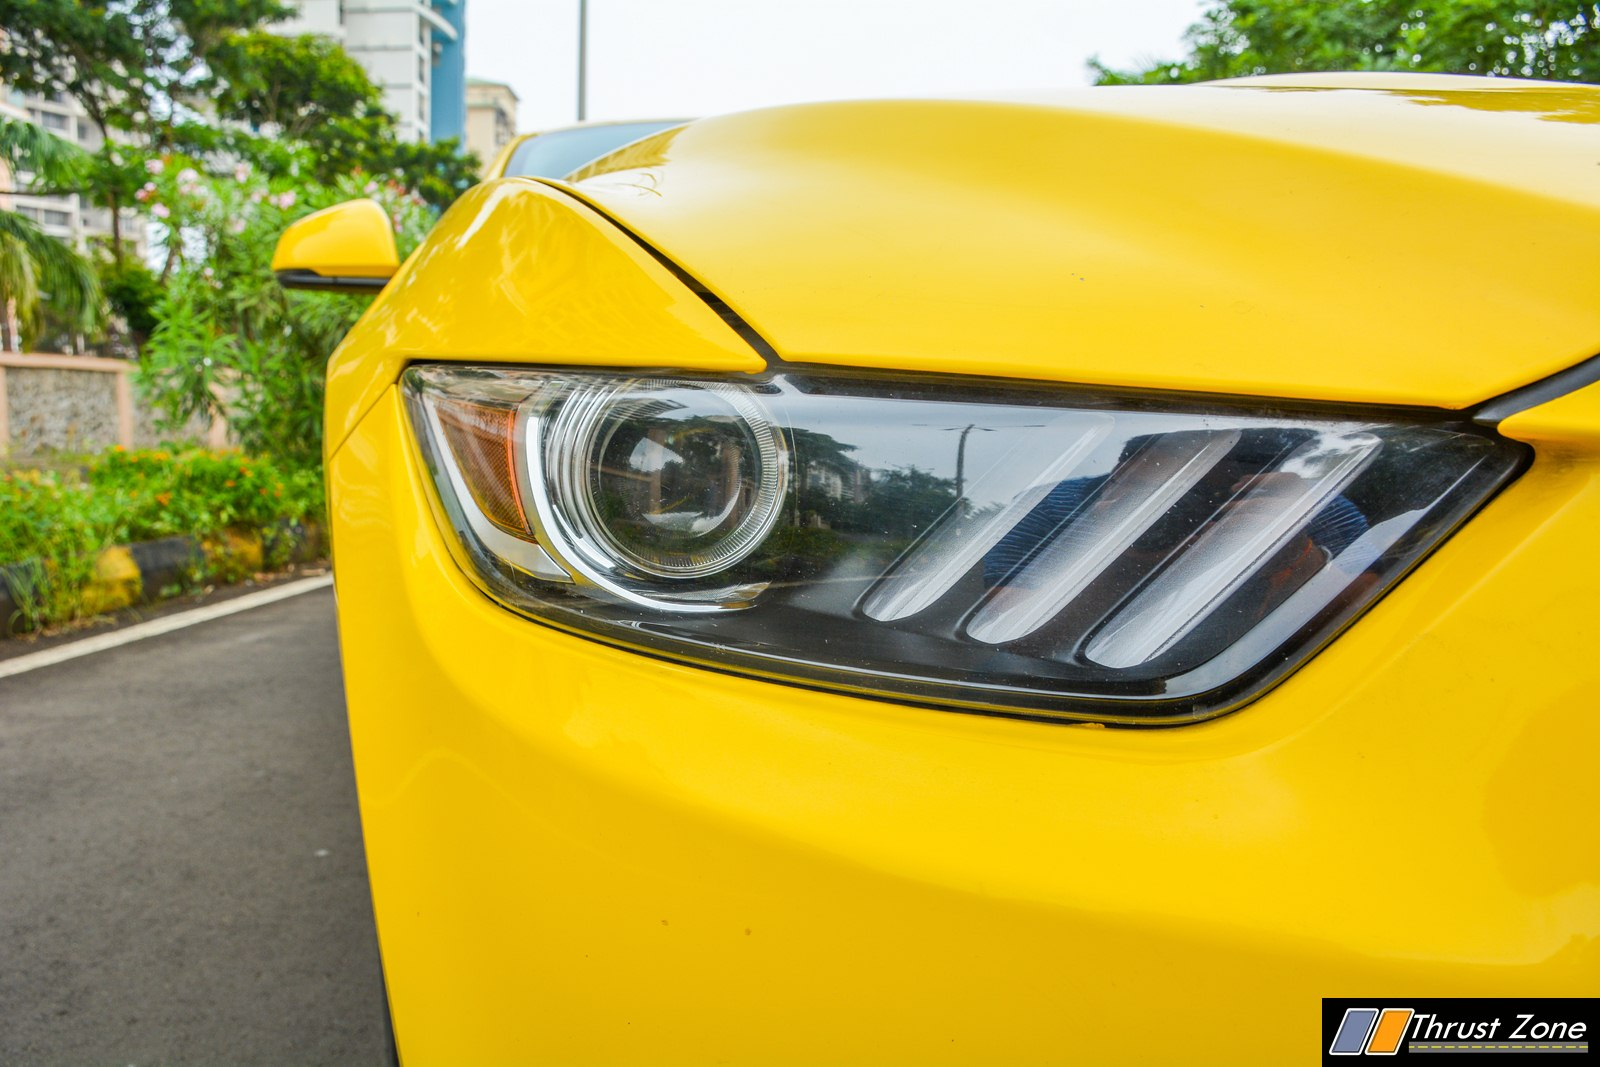 https://www.thrustzone.com/wp-content/uploads/2018/09/Ford-Mustang-India-V8-Review-20.jpg